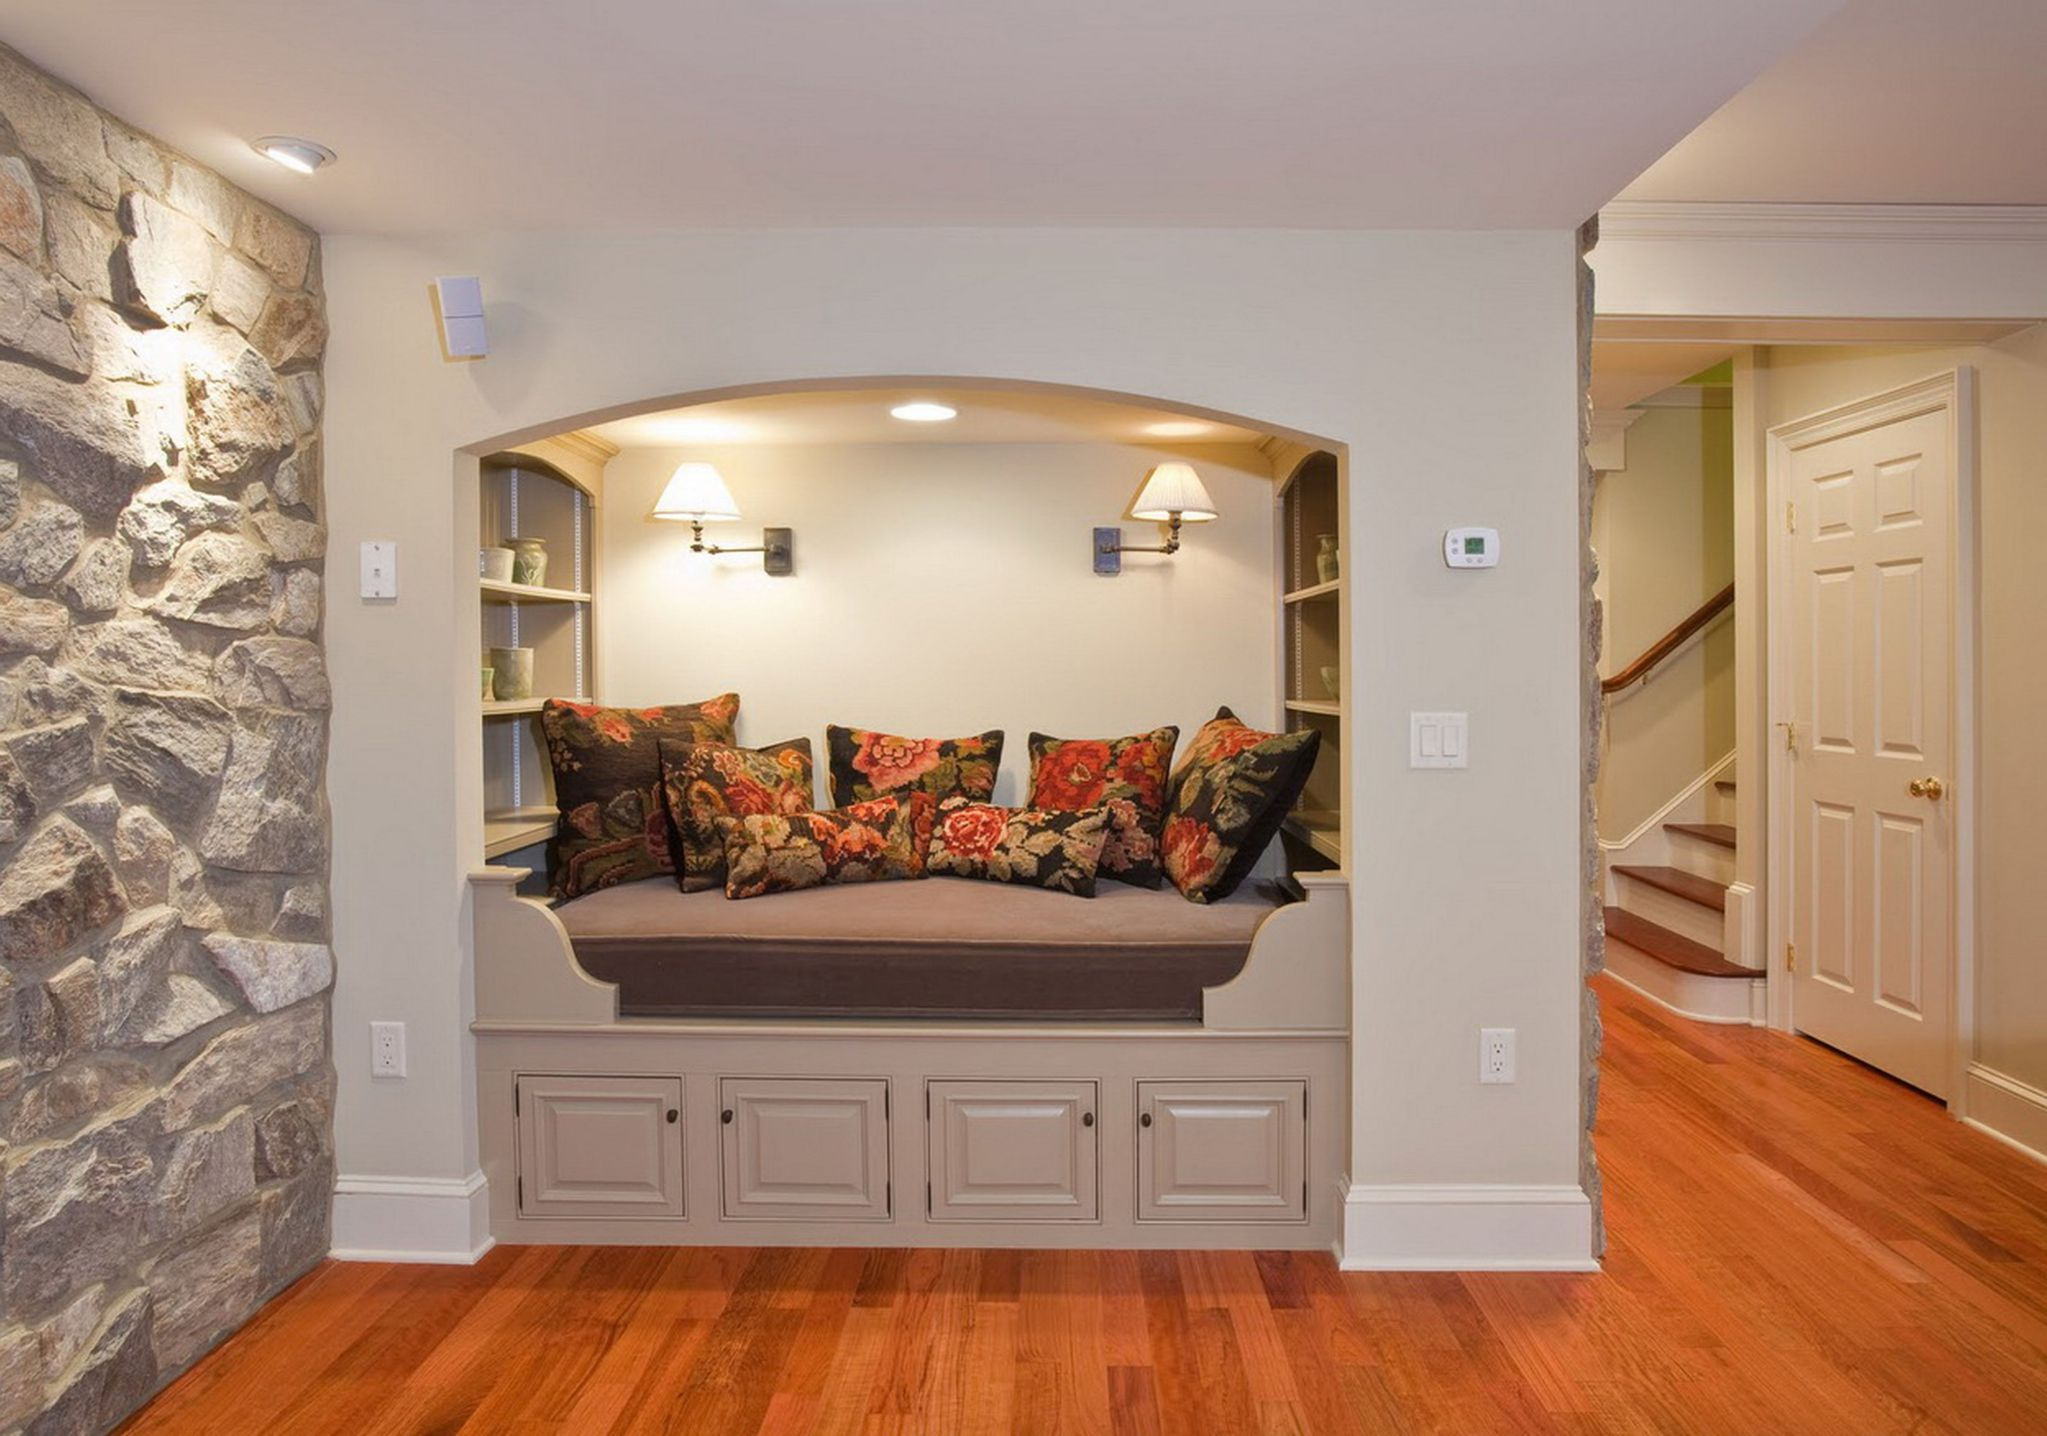 Interesting Wooden Basement Floor Ideas also Charming Bed With Wall Lamps